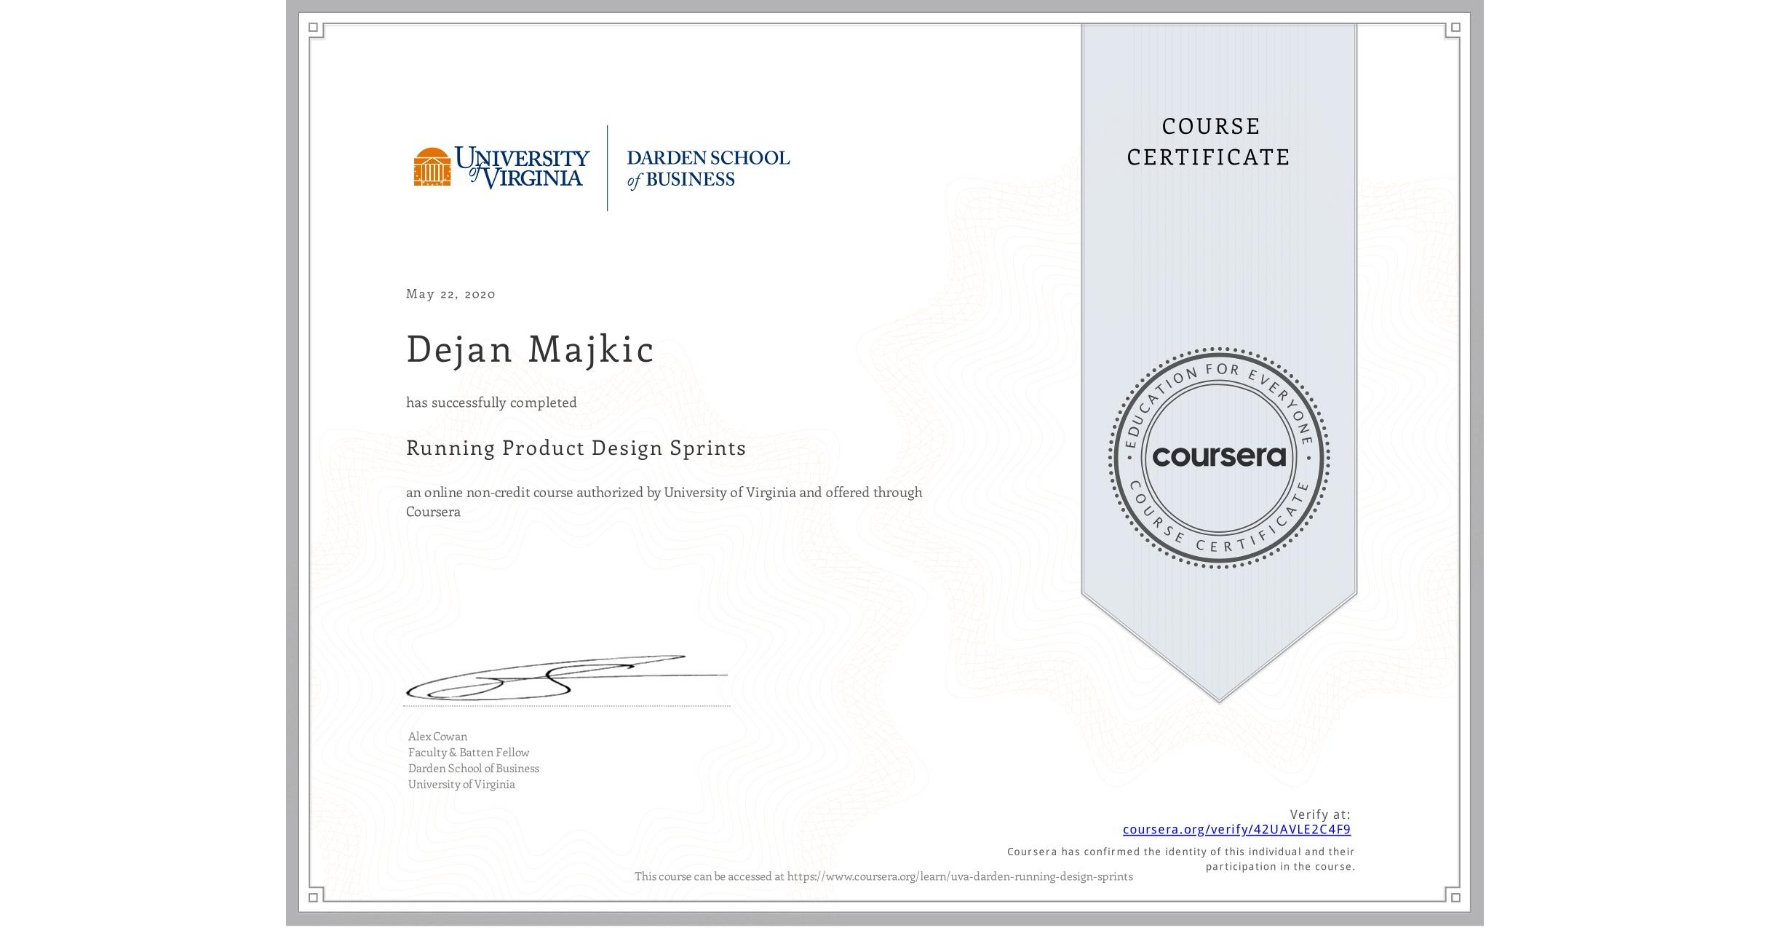 View certificate for Dejan Majkic, Running Product Design Sprints, an online non-credit course authorized by University of Virginia and offered through Coursera